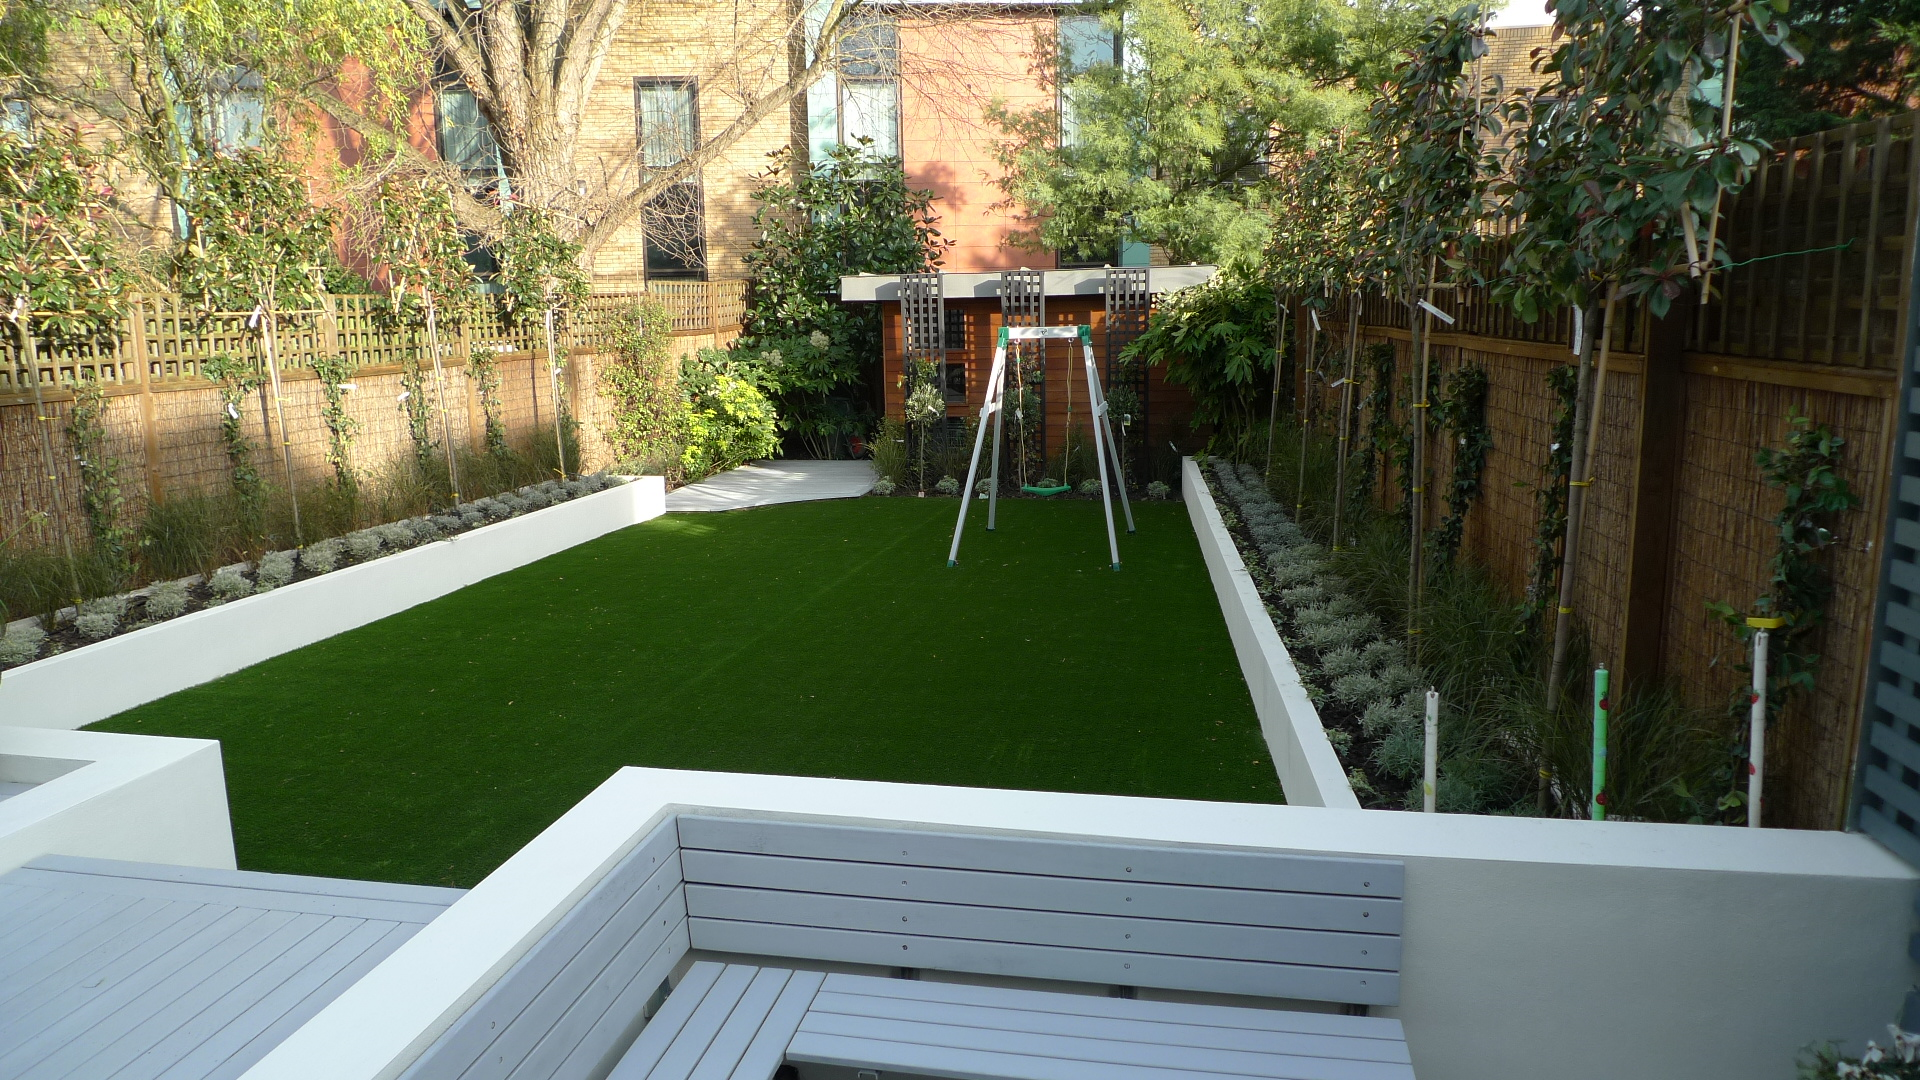 Modern garden design ideas london london garden design for Garden design ideas